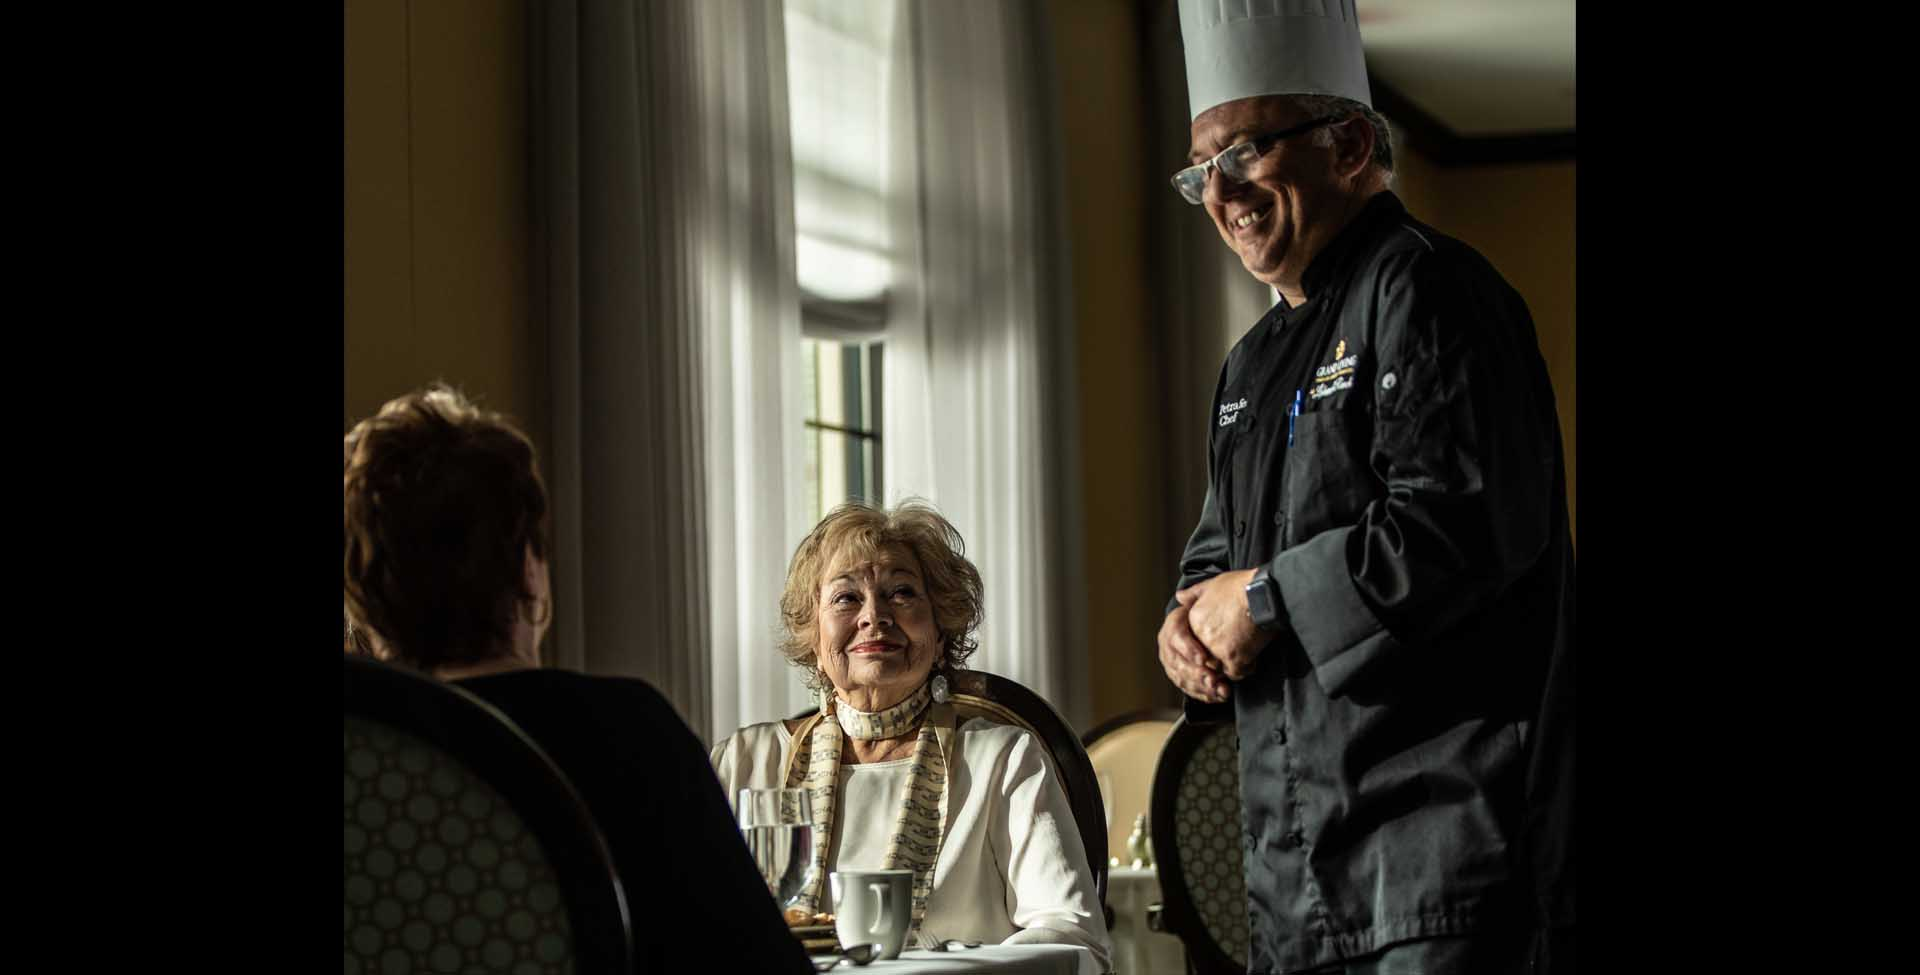 residents and executive chef interacting